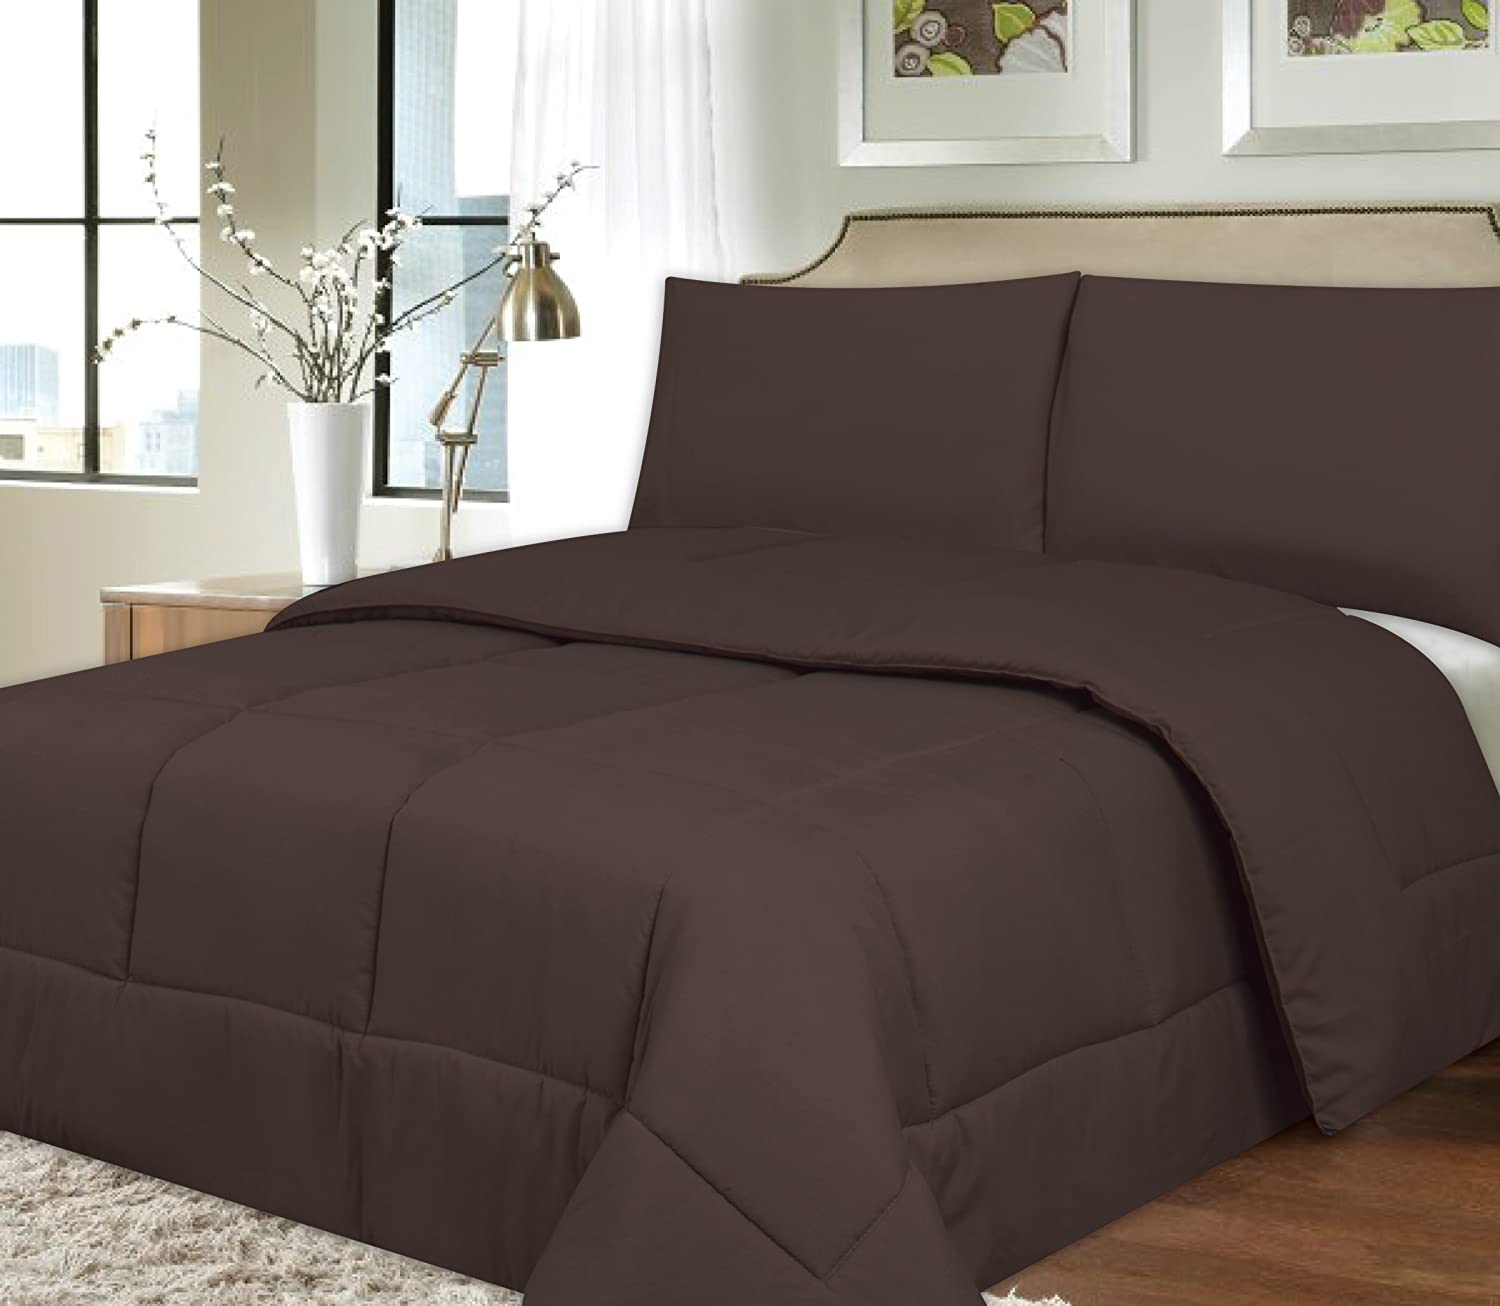 Polyester Comforter Box Stitch Microfiber Bedding - Queen, Brown